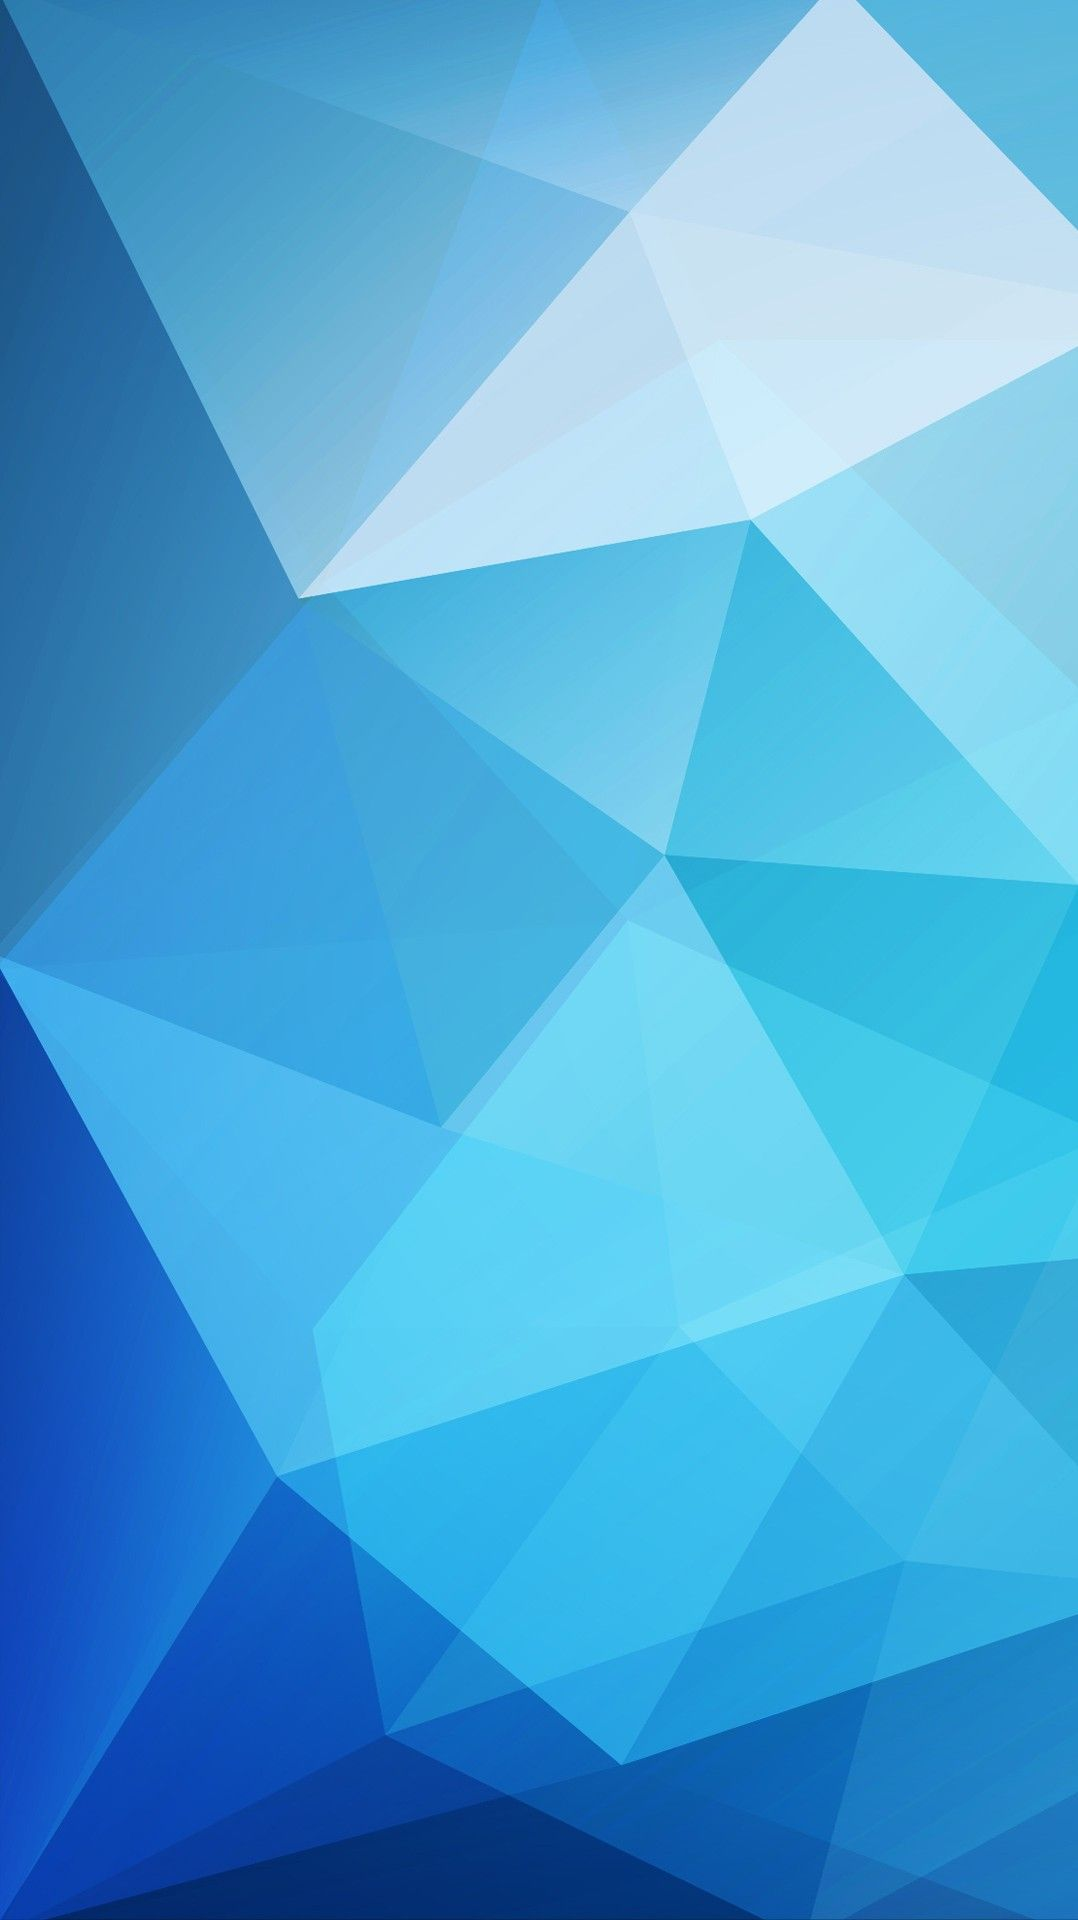 1078x1920 Blue-Low-Poly-Wallpaper-iPhone-Fondo de pantalla | iPhone Fondos de pantalla | Azul